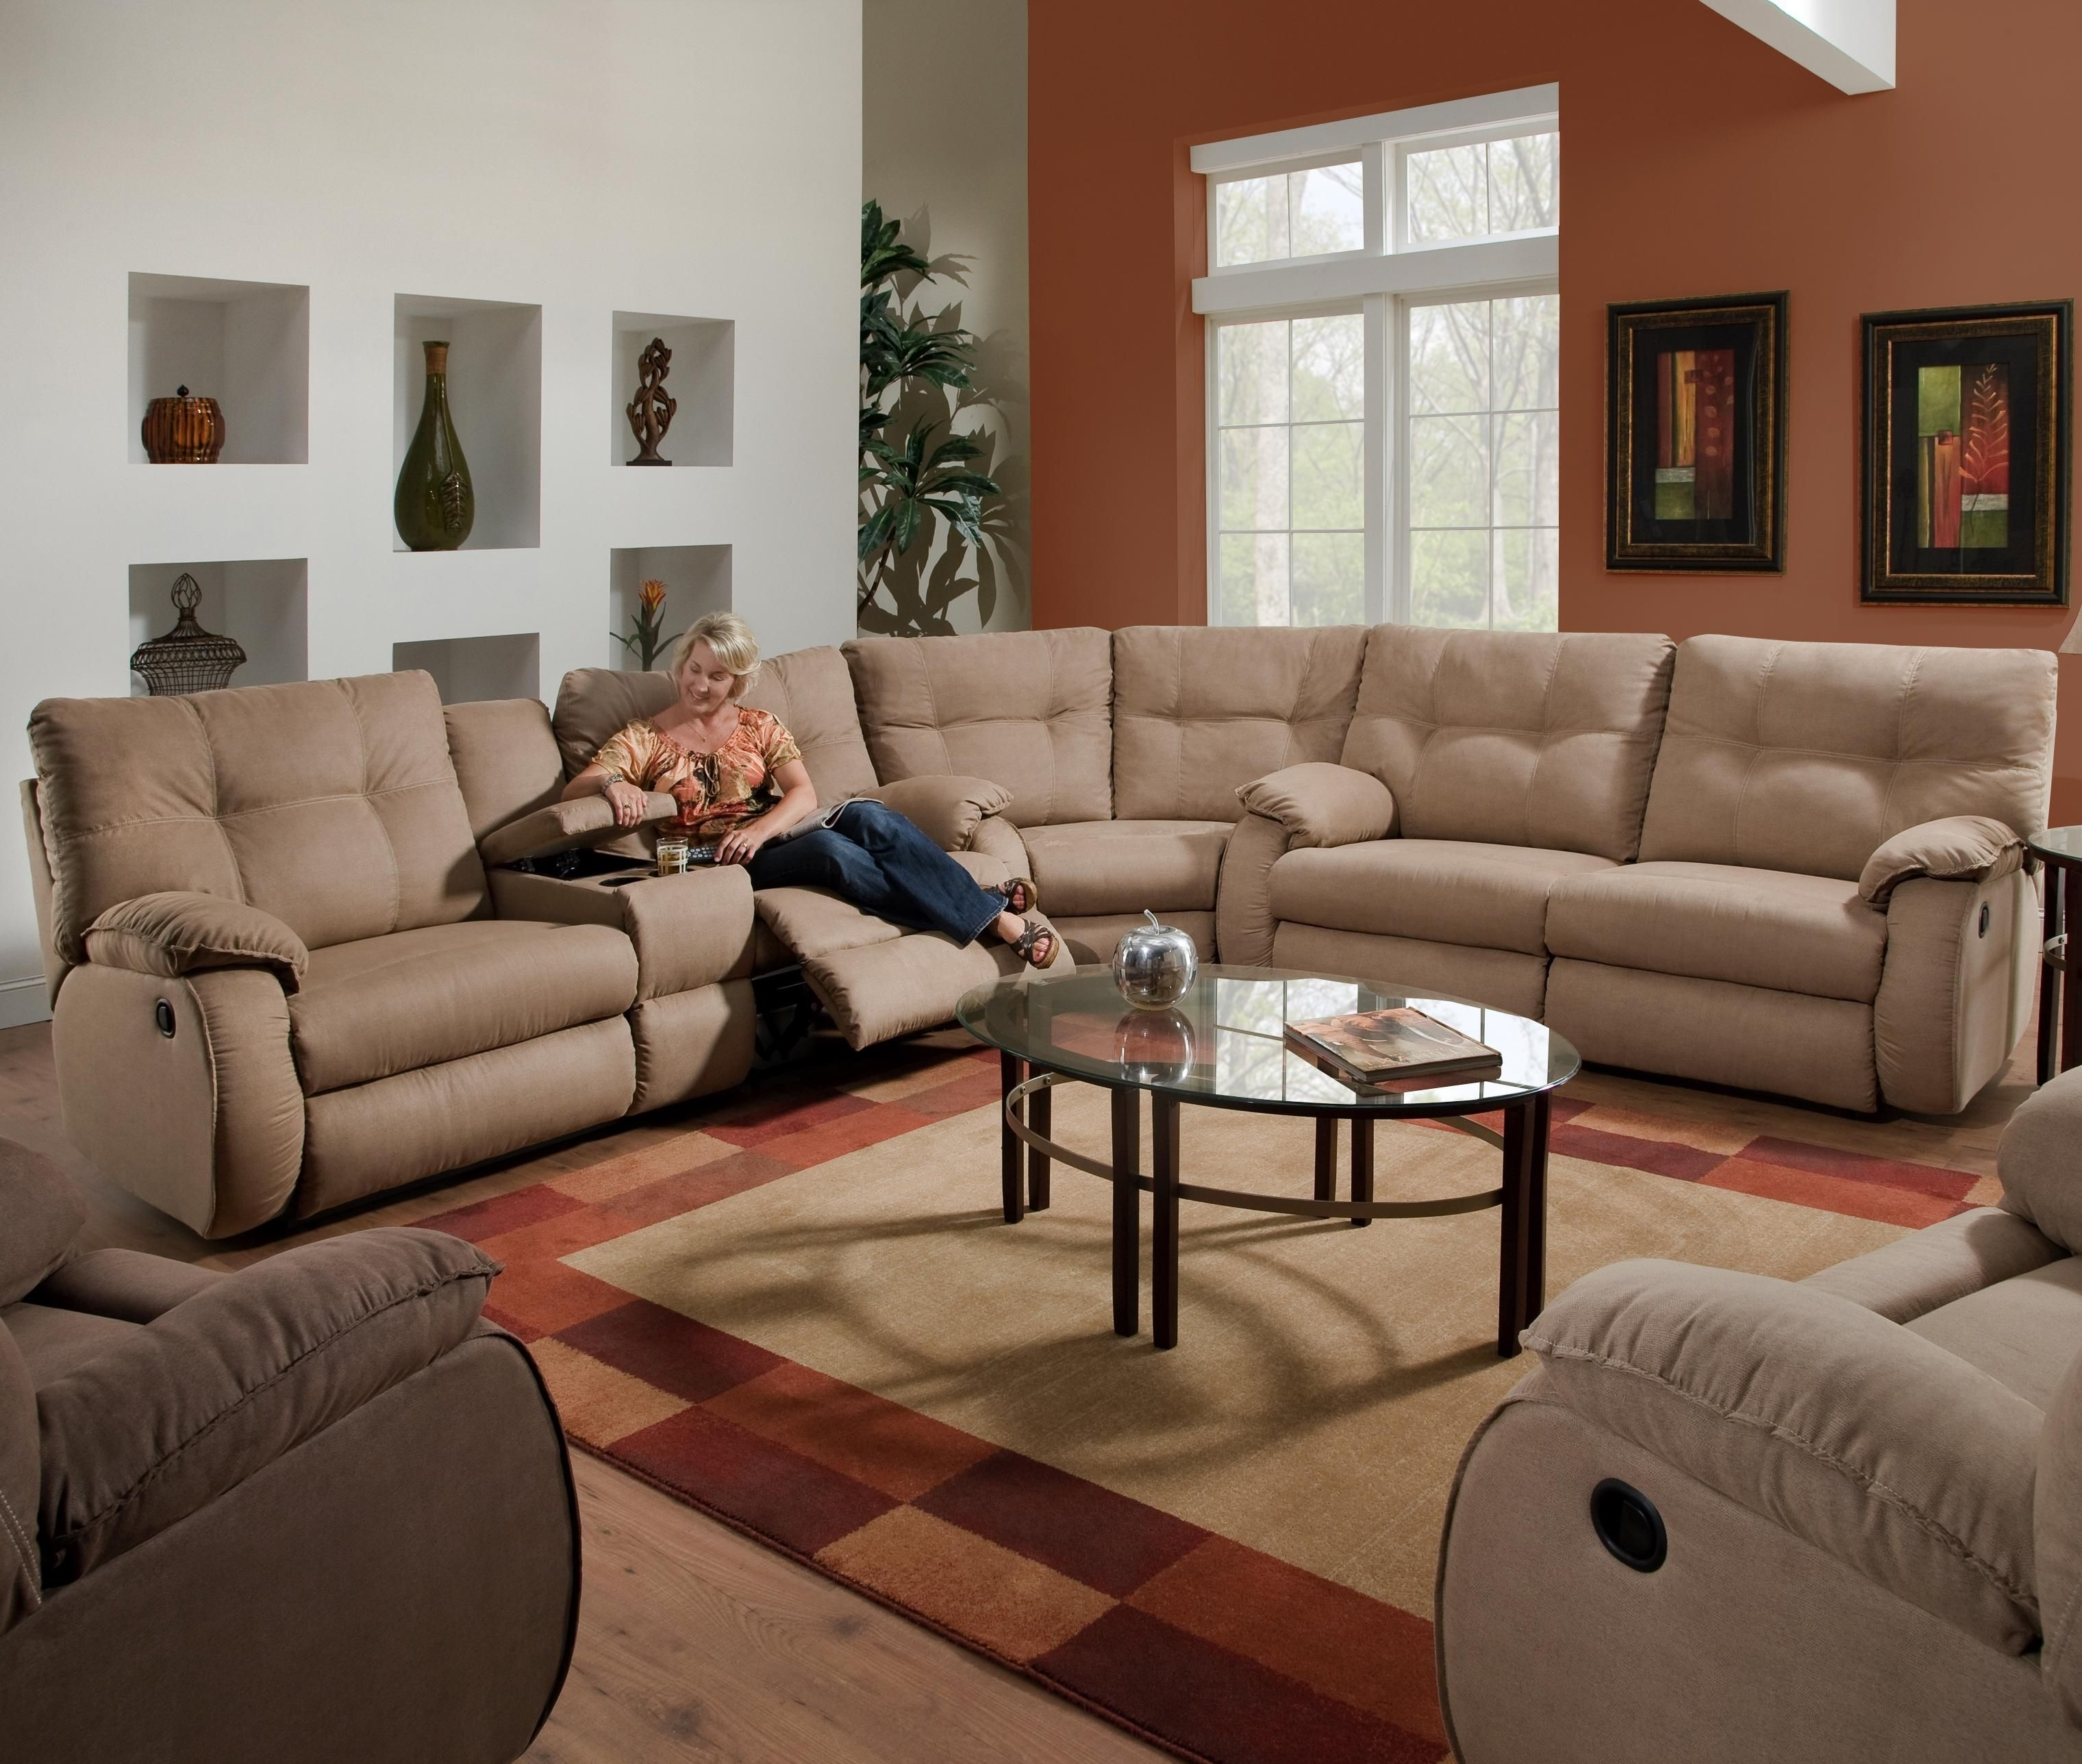 2018 Dodger Reclining Sectional Sofasouthern Motion (View 1 of 20)